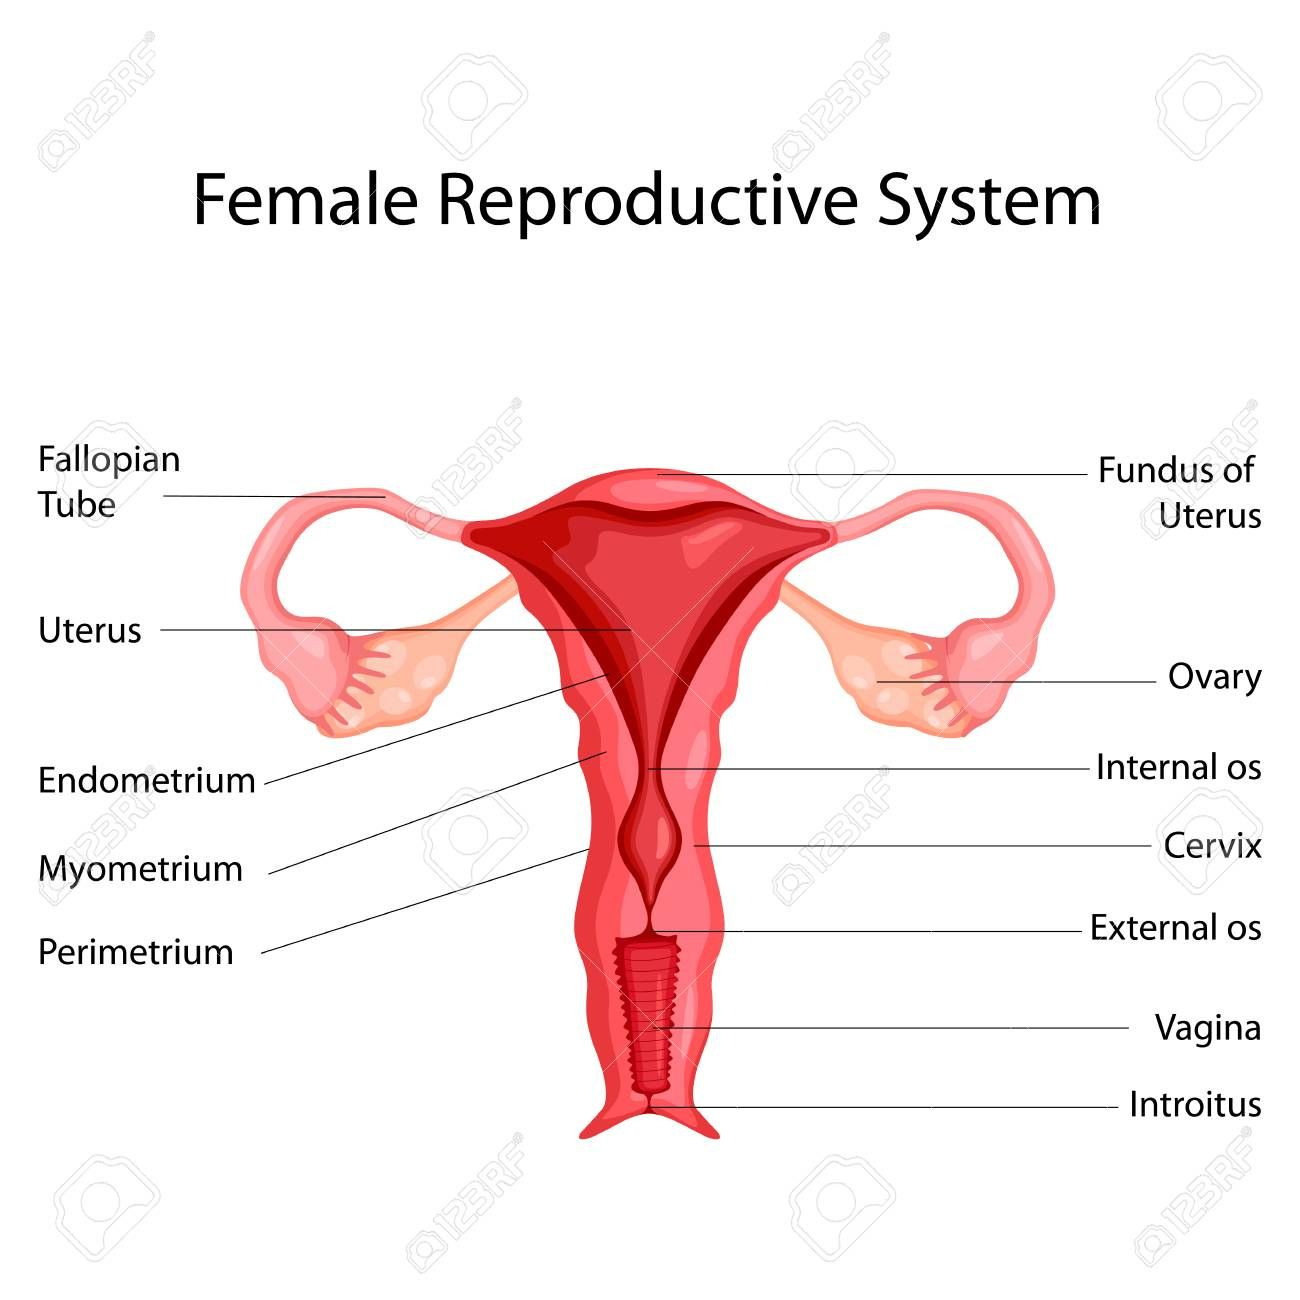 image of female reproductive system diagram image of female reproductive system diagram education chart of [ 1300 x 1300 Pixel ]